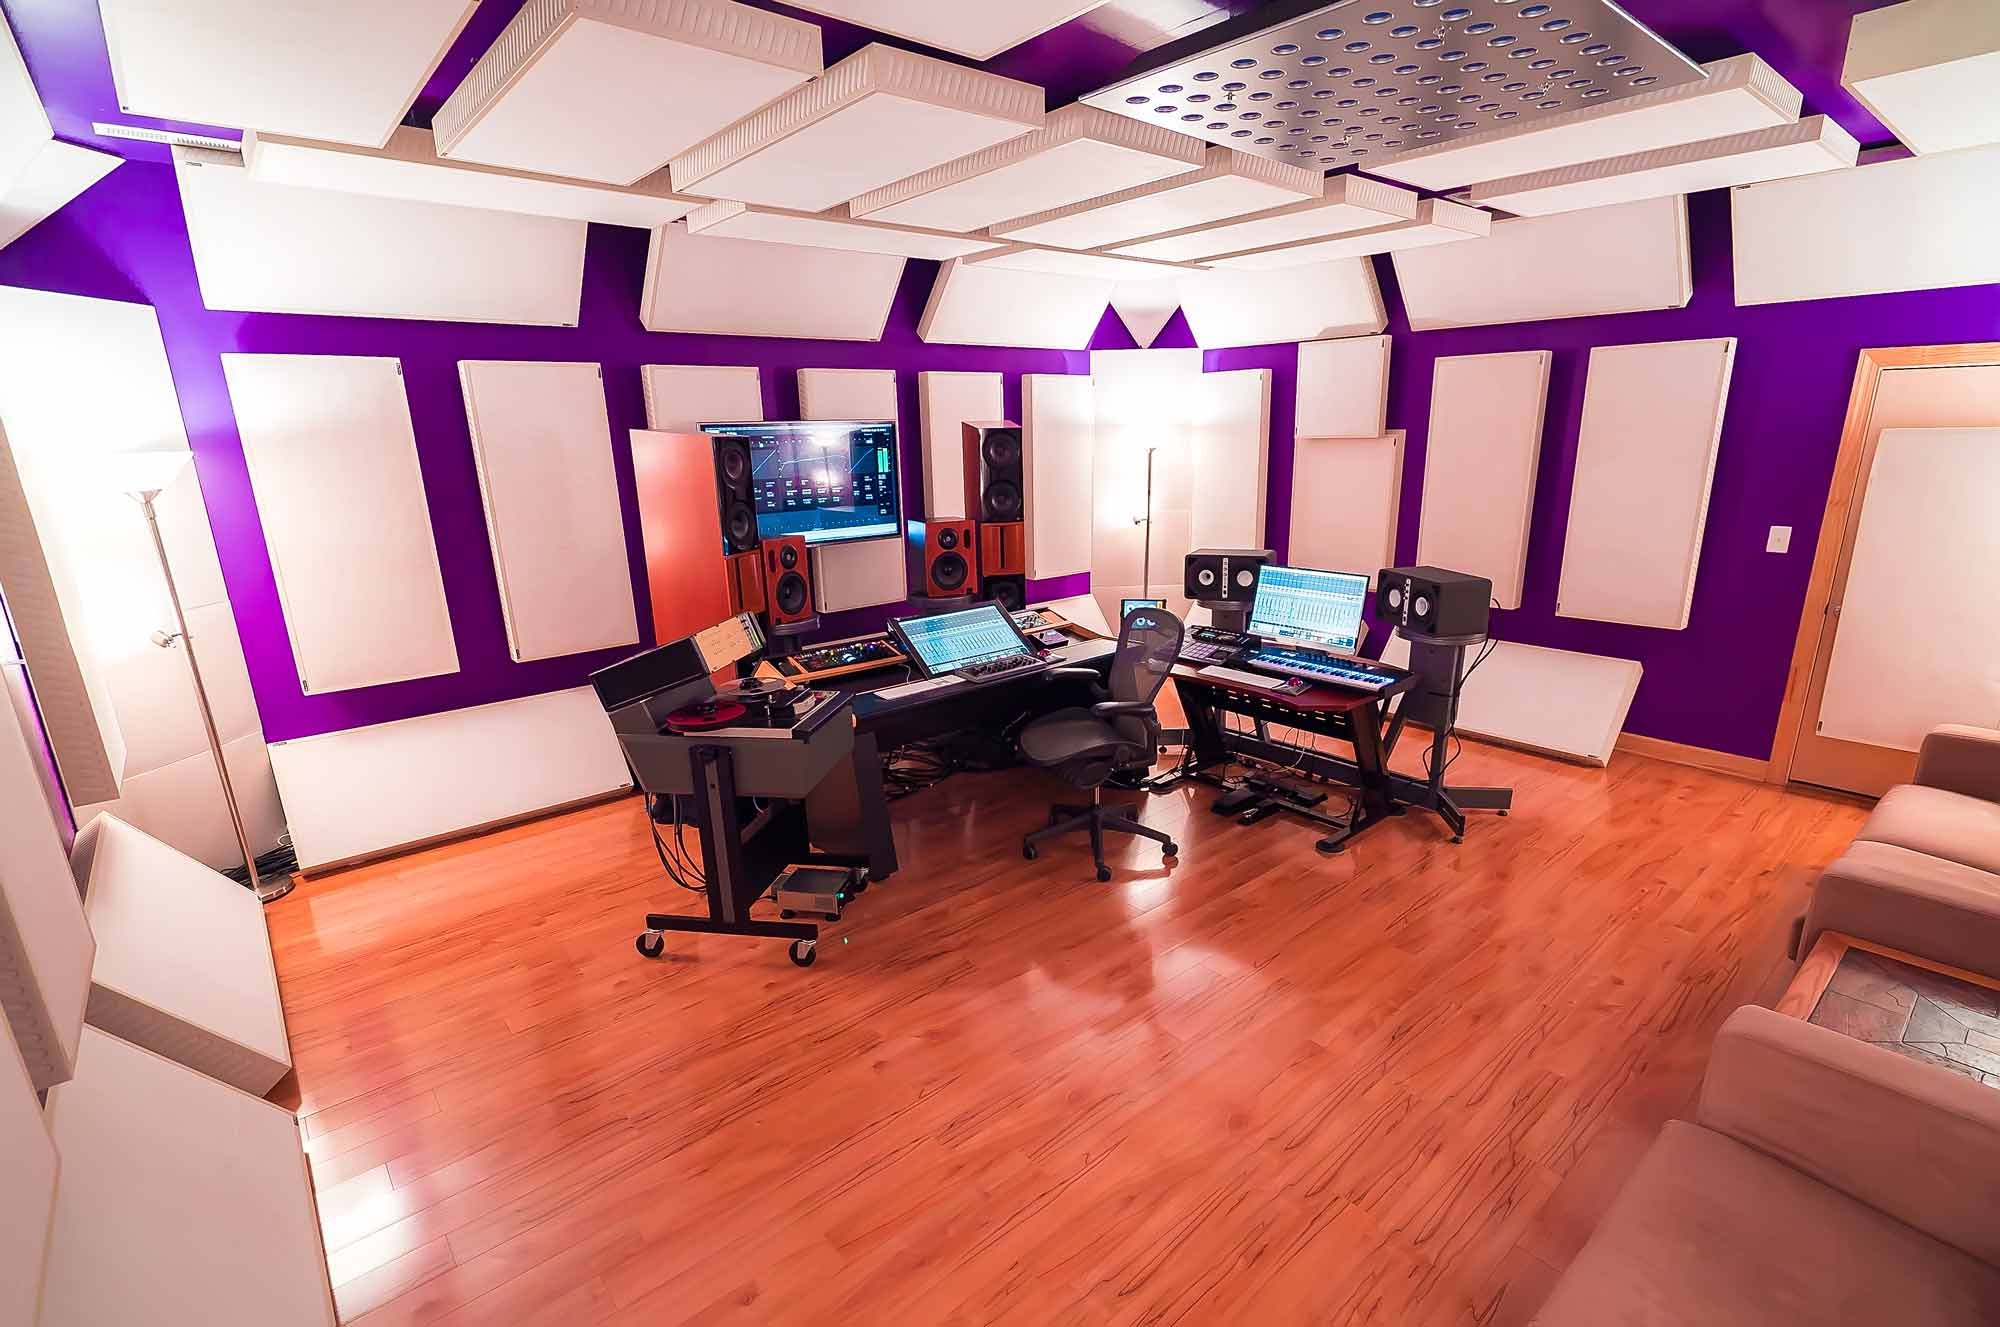 Cphonic Online Mastering and Mixing picture from back left of room